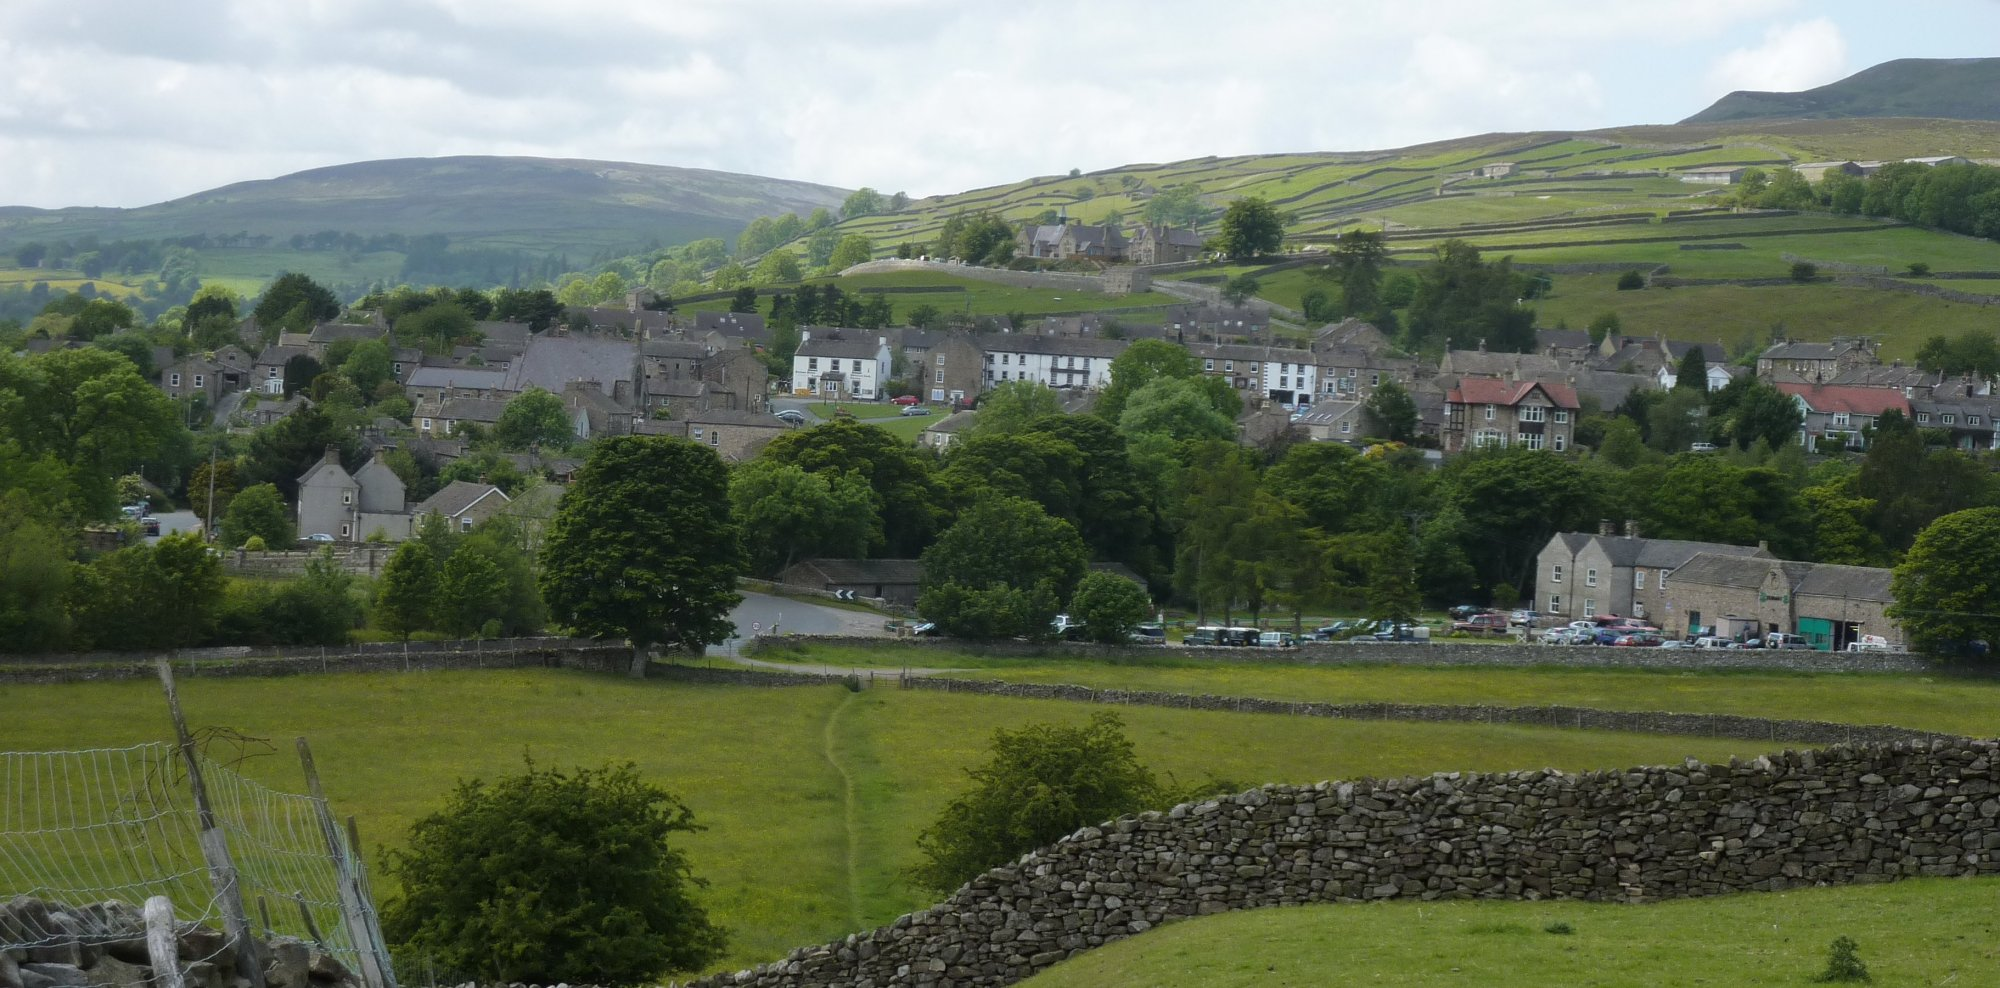 On final approach to Reeth